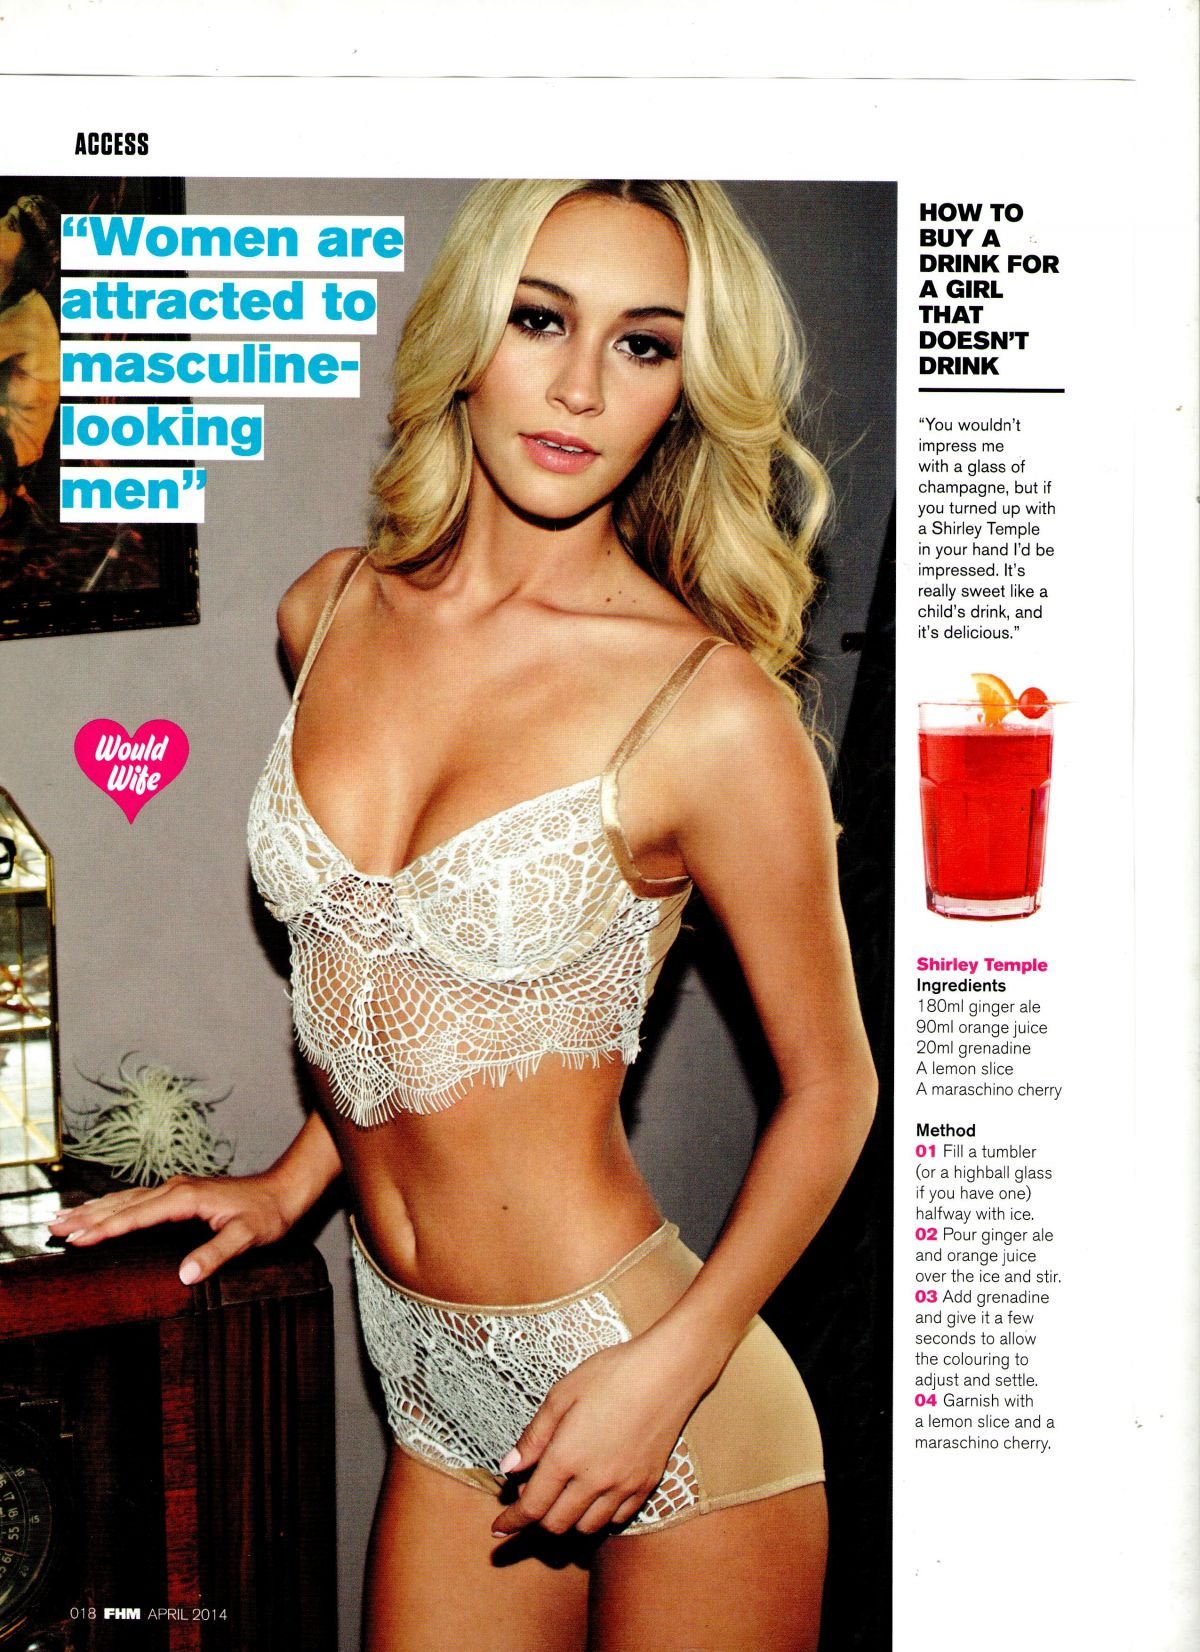 BRYANA HOLLY in FHM Magazine, April 2014 Issue